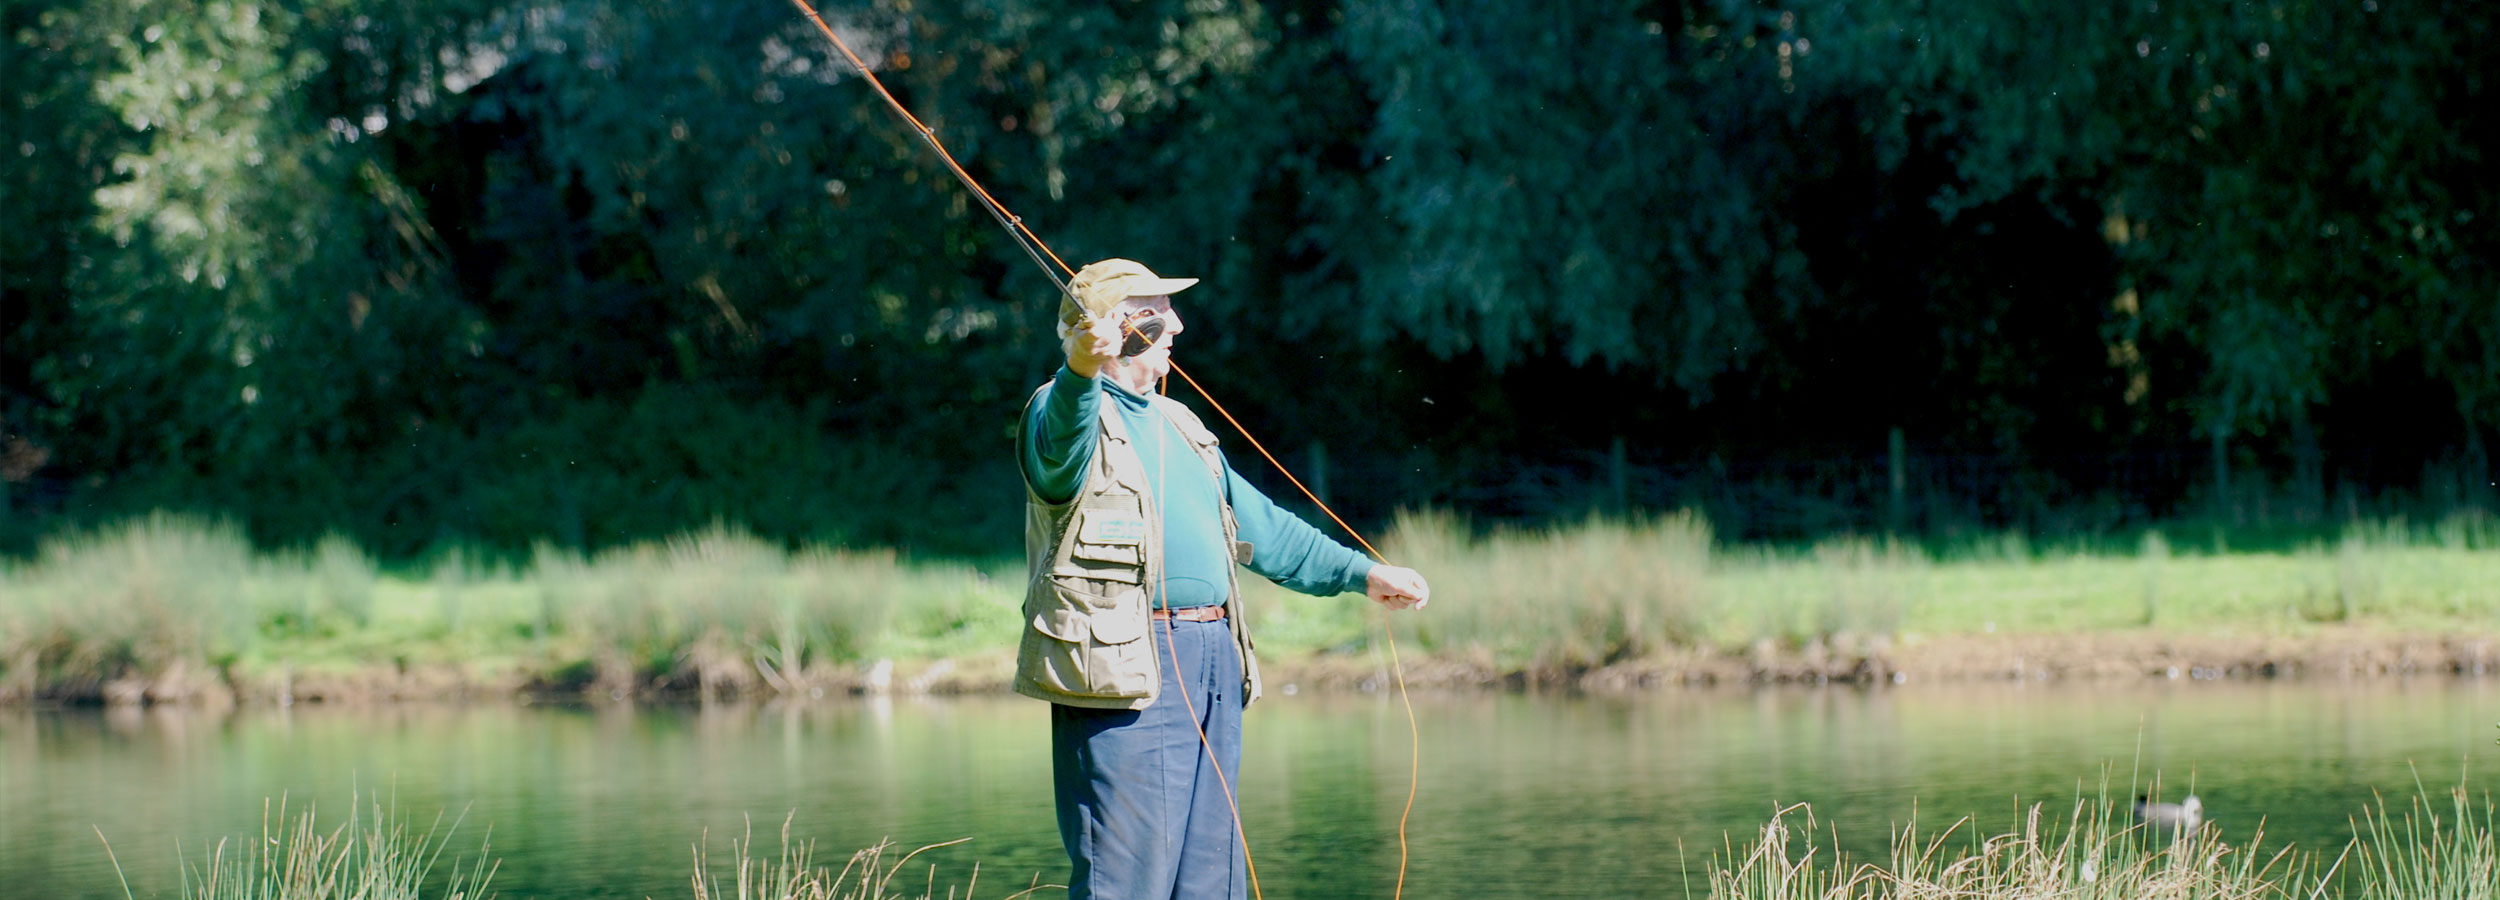 Fly fishing club for Fly fishing clubs